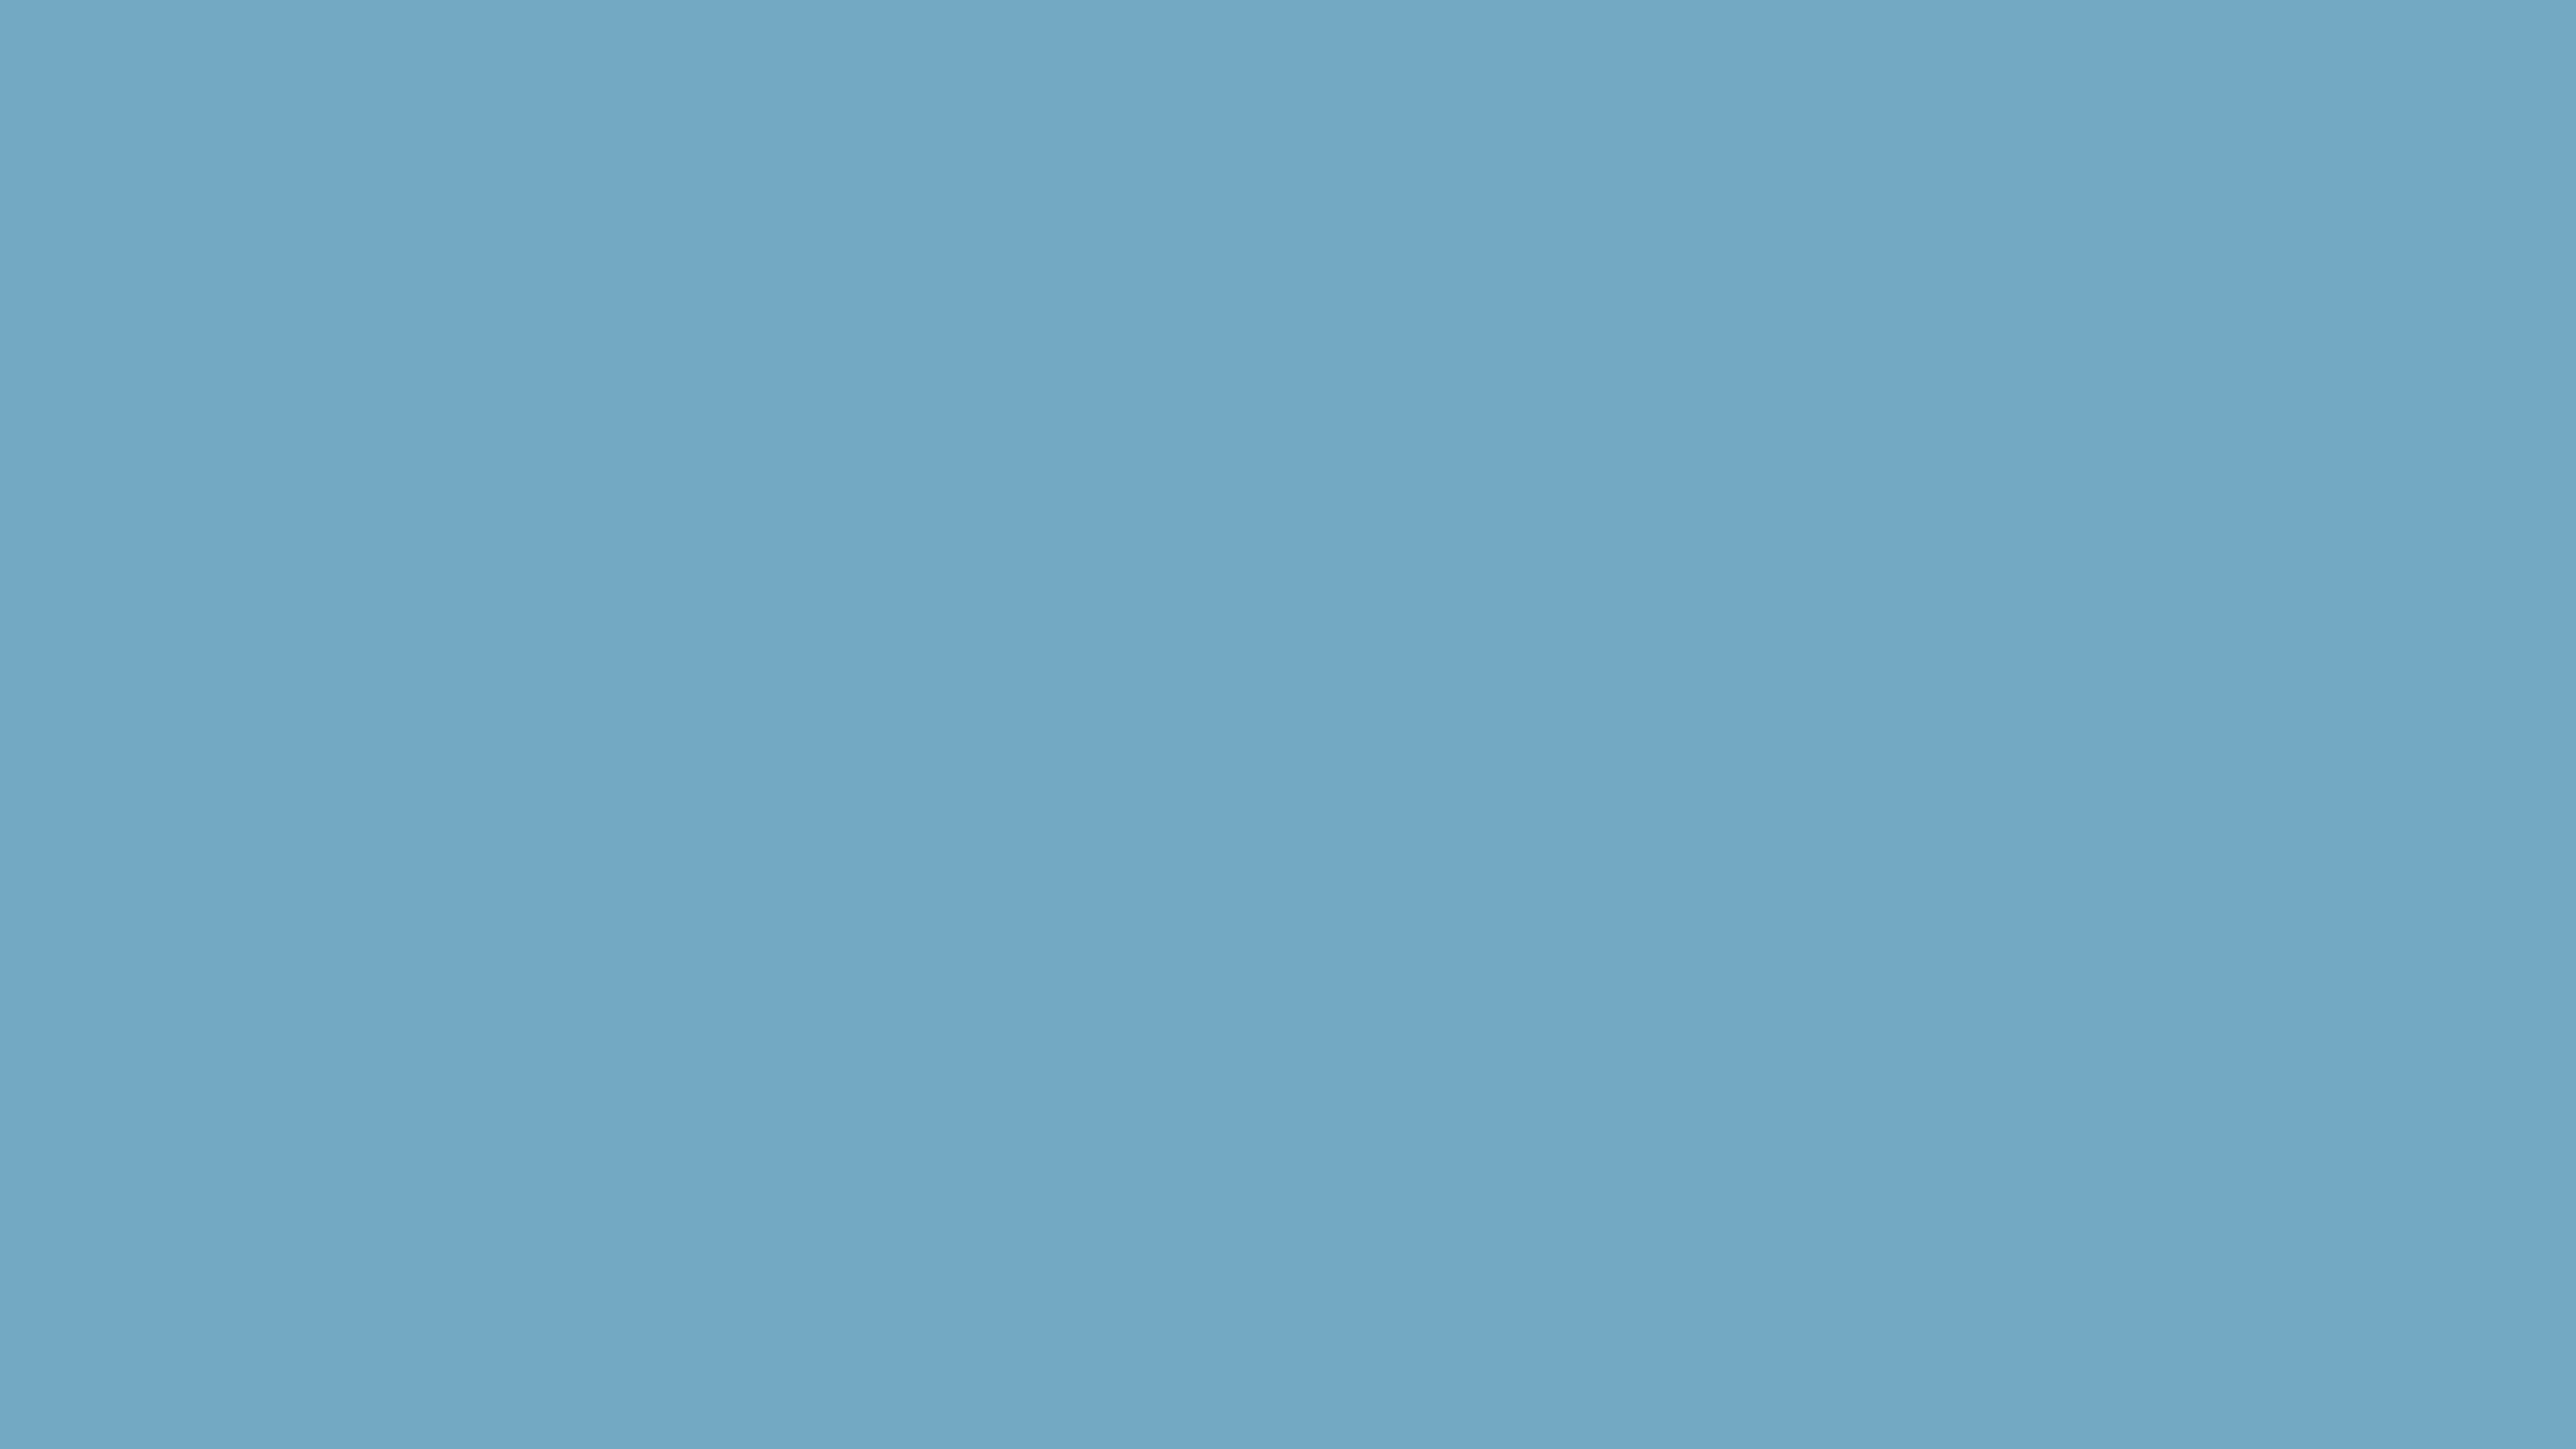 5120x2880 Moonstone Blue Solid Color Background